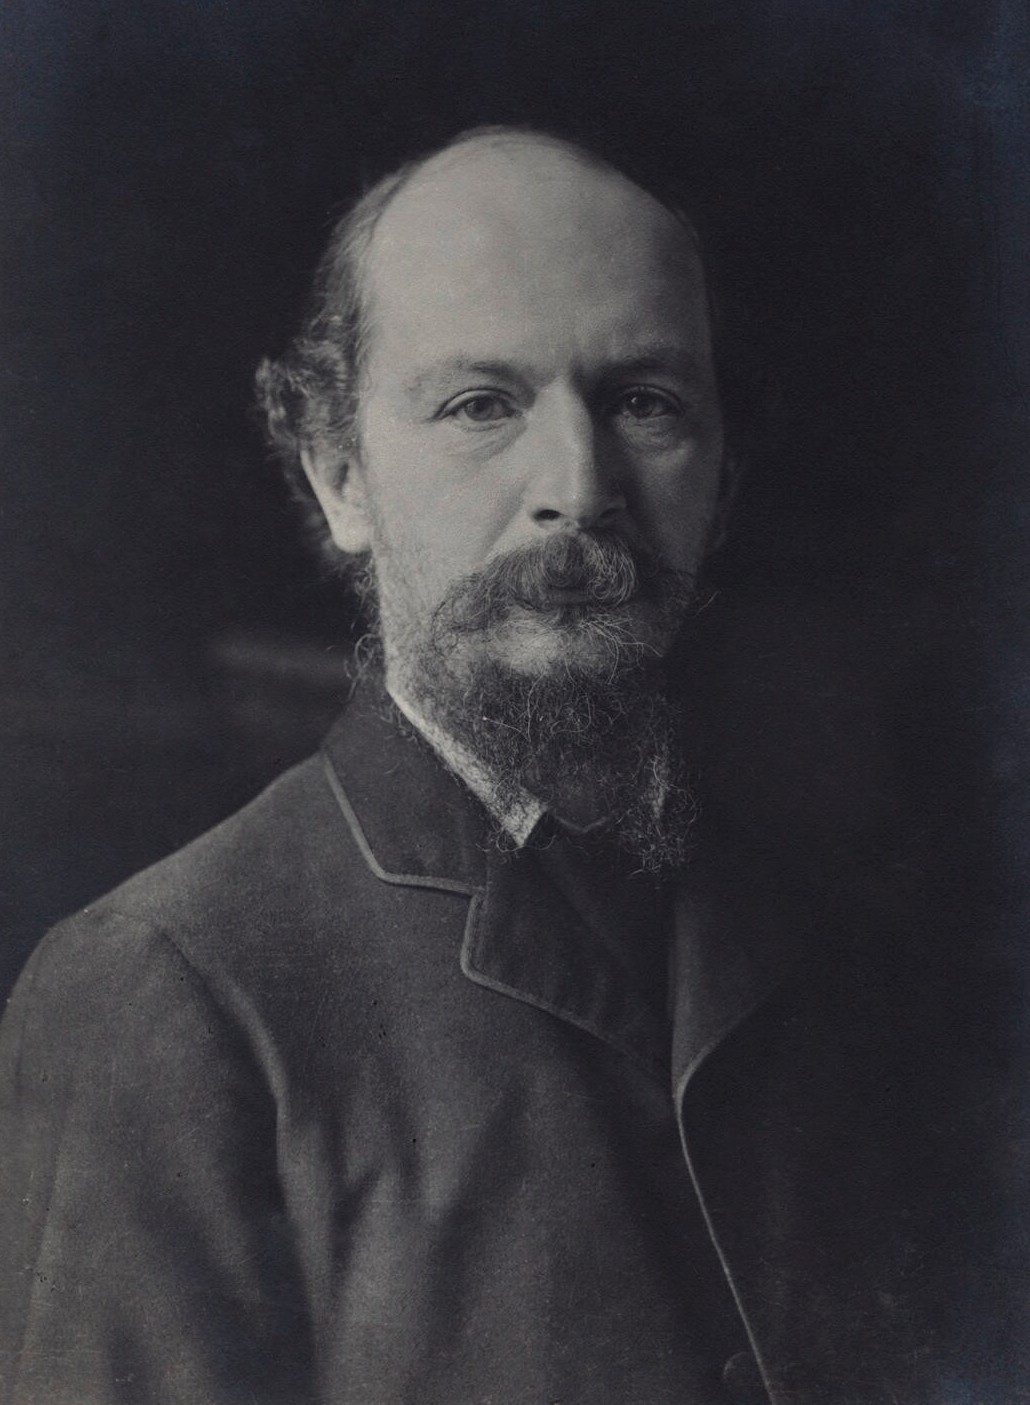 Swinburne aged 52